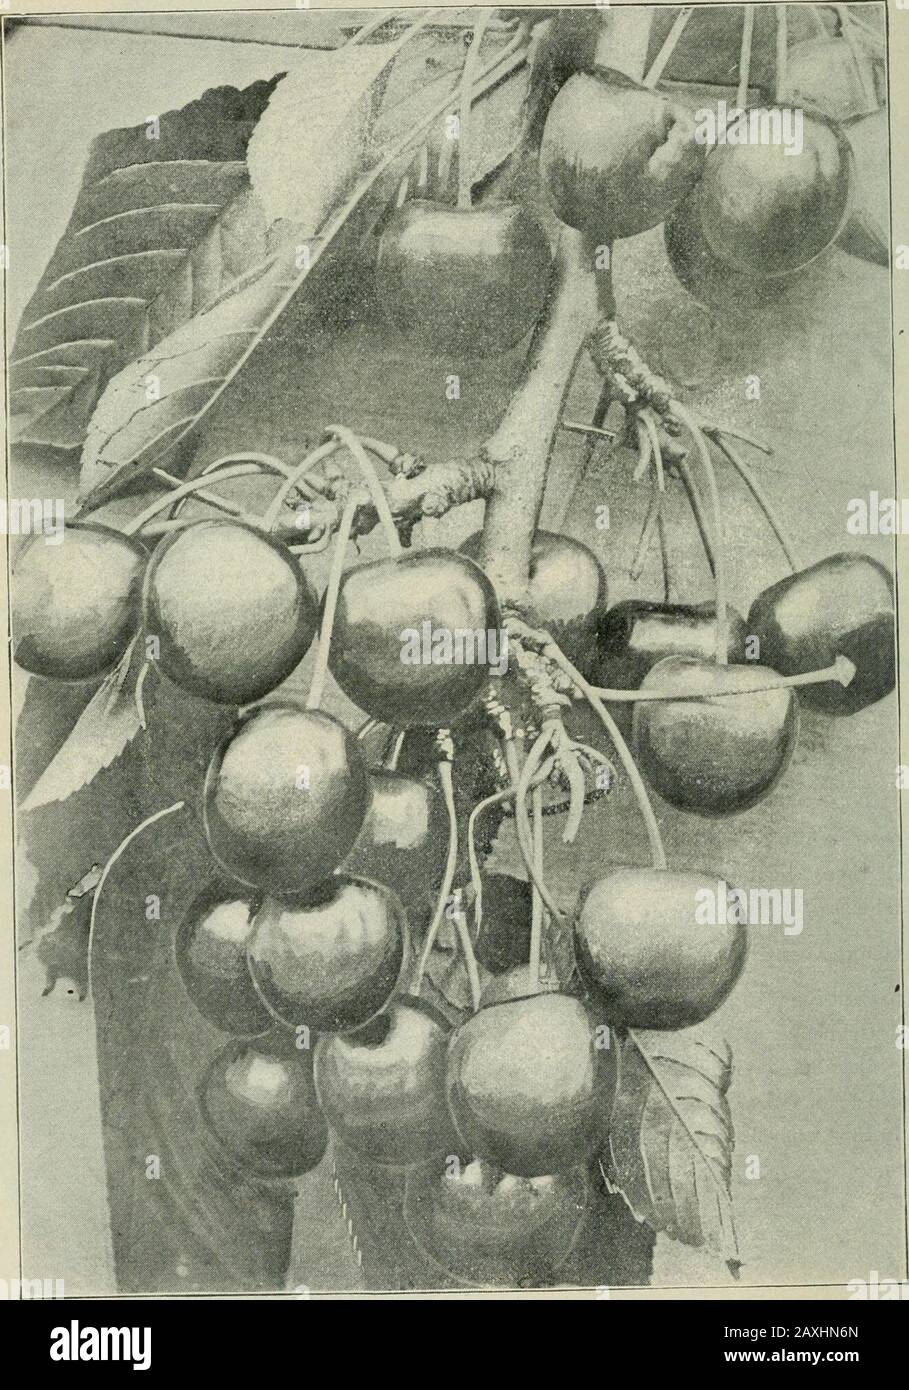 Ontario Sessional Papers, 1898-99, No.18-25 . Yellow Transparent. (Section ) 27 CHERRIES.. Yellow.; Spamsh—Fruiting Branch in 1896.[28] CHERRIES. Classification. In describing the cherries the following general classification is followed, though for con-venience the varieties are arranged in alphabetical order. In some cases it is impossible toplace a variety because of the crossing of one variety with another, which renders the classifica-tion almost useless. I. Prunus Cerasus (Sour Cherry Class). (a) Kentish—Pale red with uncolored juice. (b) Morellos—Dark red lruits, with dark colored juice Stock Photo